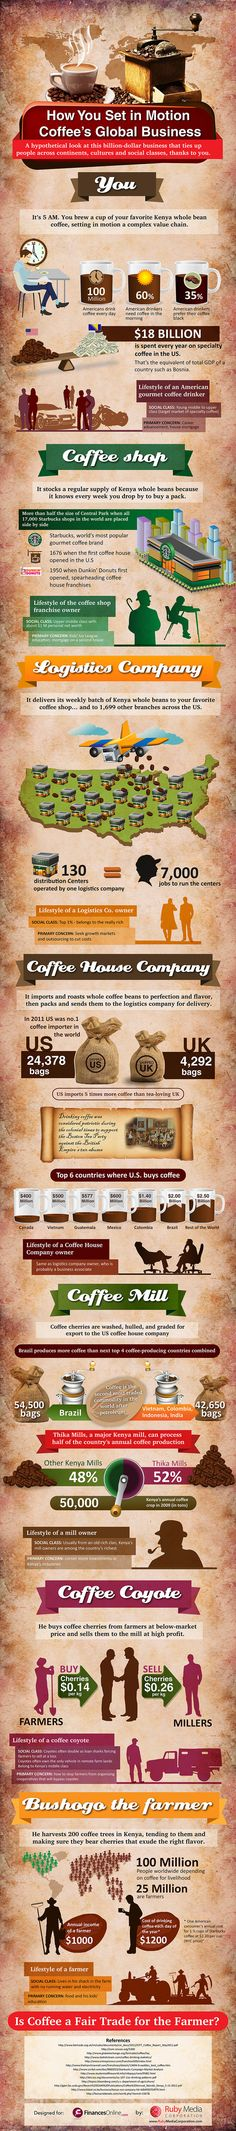 Here's How You Make Coffee a Billion-Dollar Business @ Pinfographics